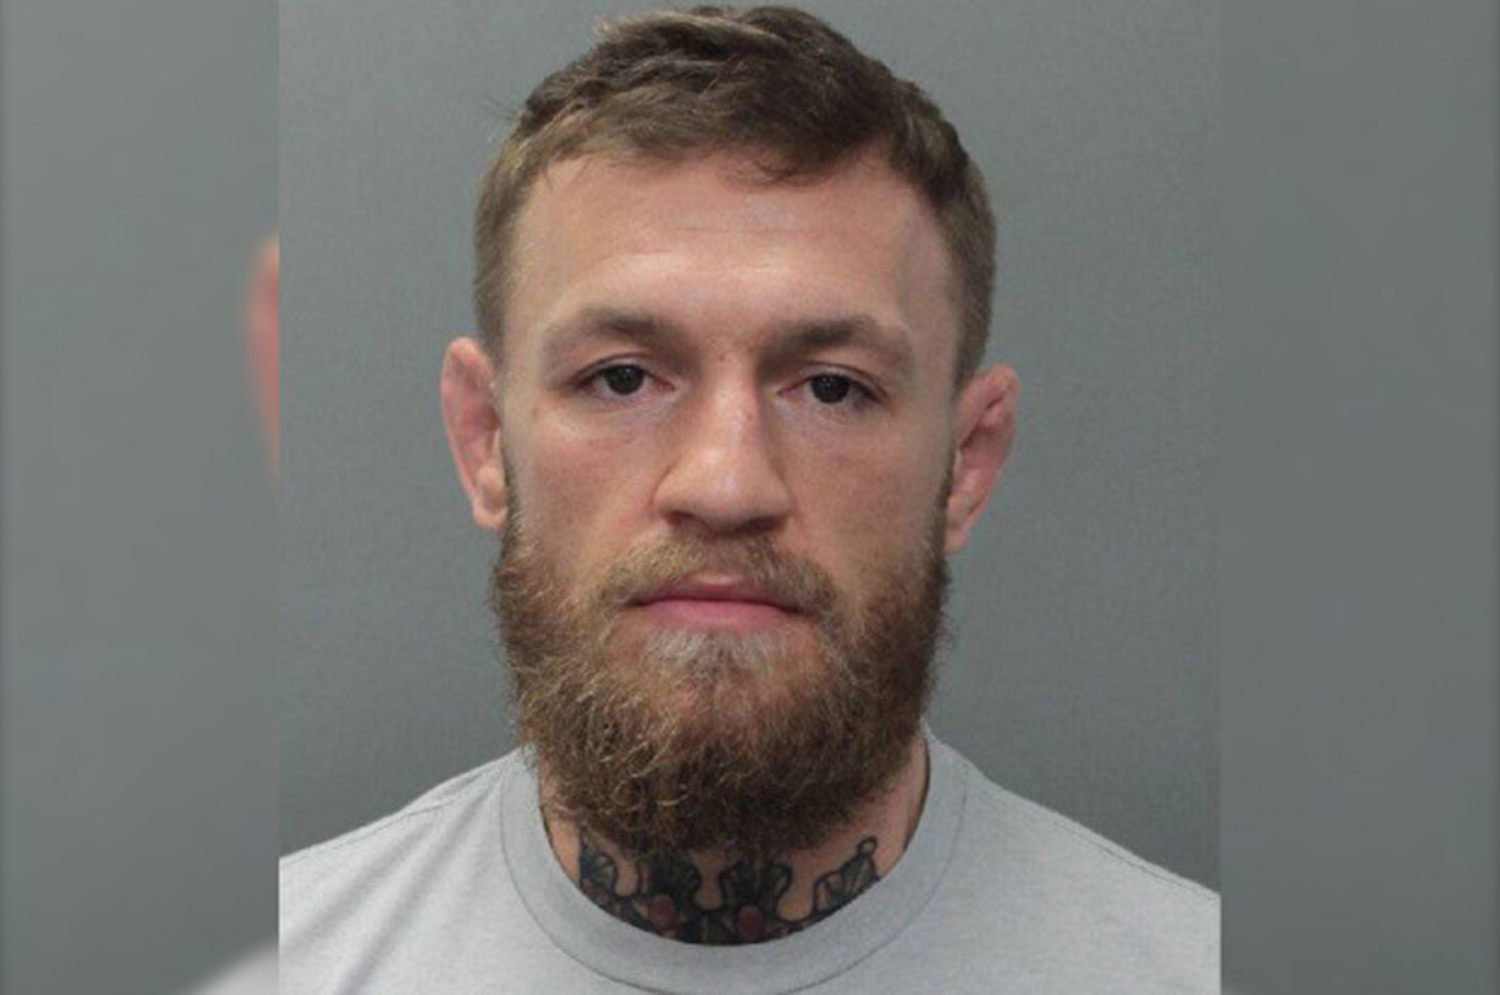 Conor McGregor's mug shot from Miami police.